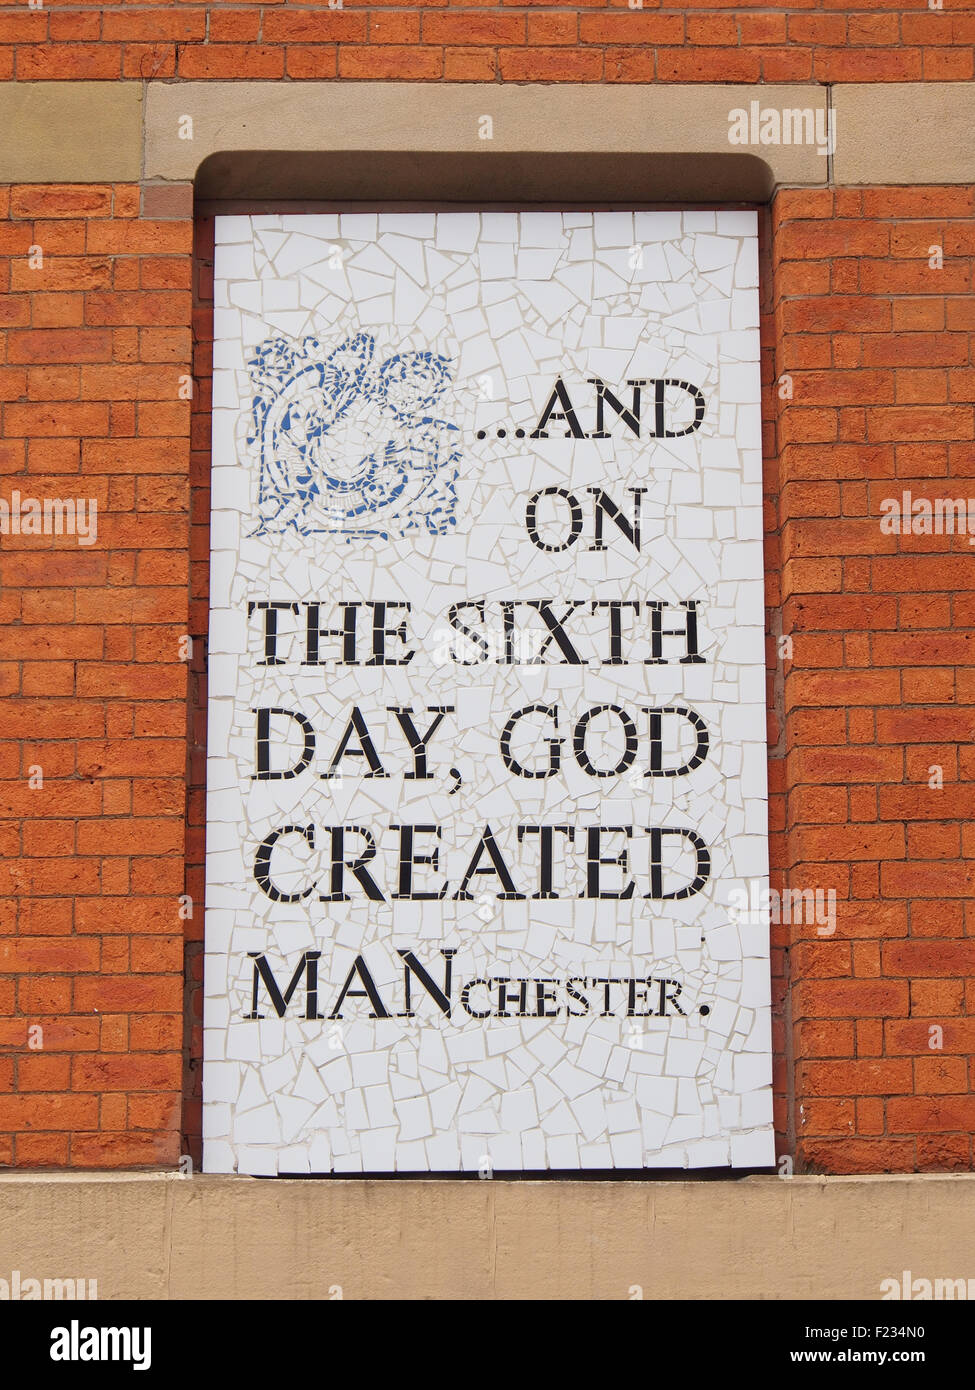 One of several mosaics on the walls of Afflecks Palace indoor market, Manchester, UK, by local artist Mark Kennedy. - Stock Image